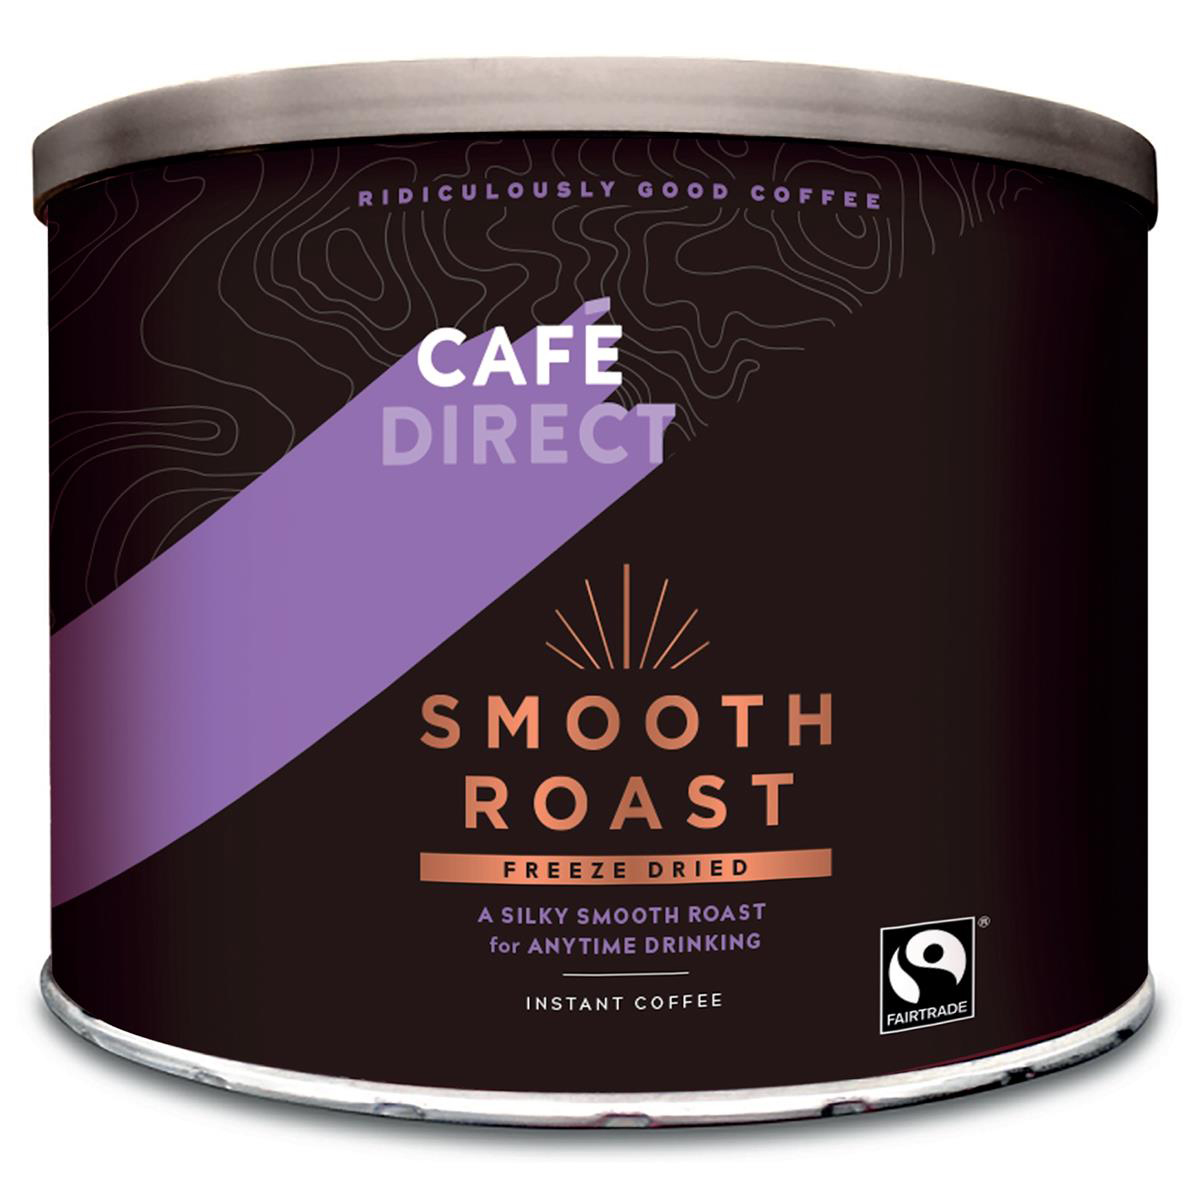 Coffee Cafe Direct Smooth Roast Freeze Dried Instant Coffee Tin 500g Ref FCF0003